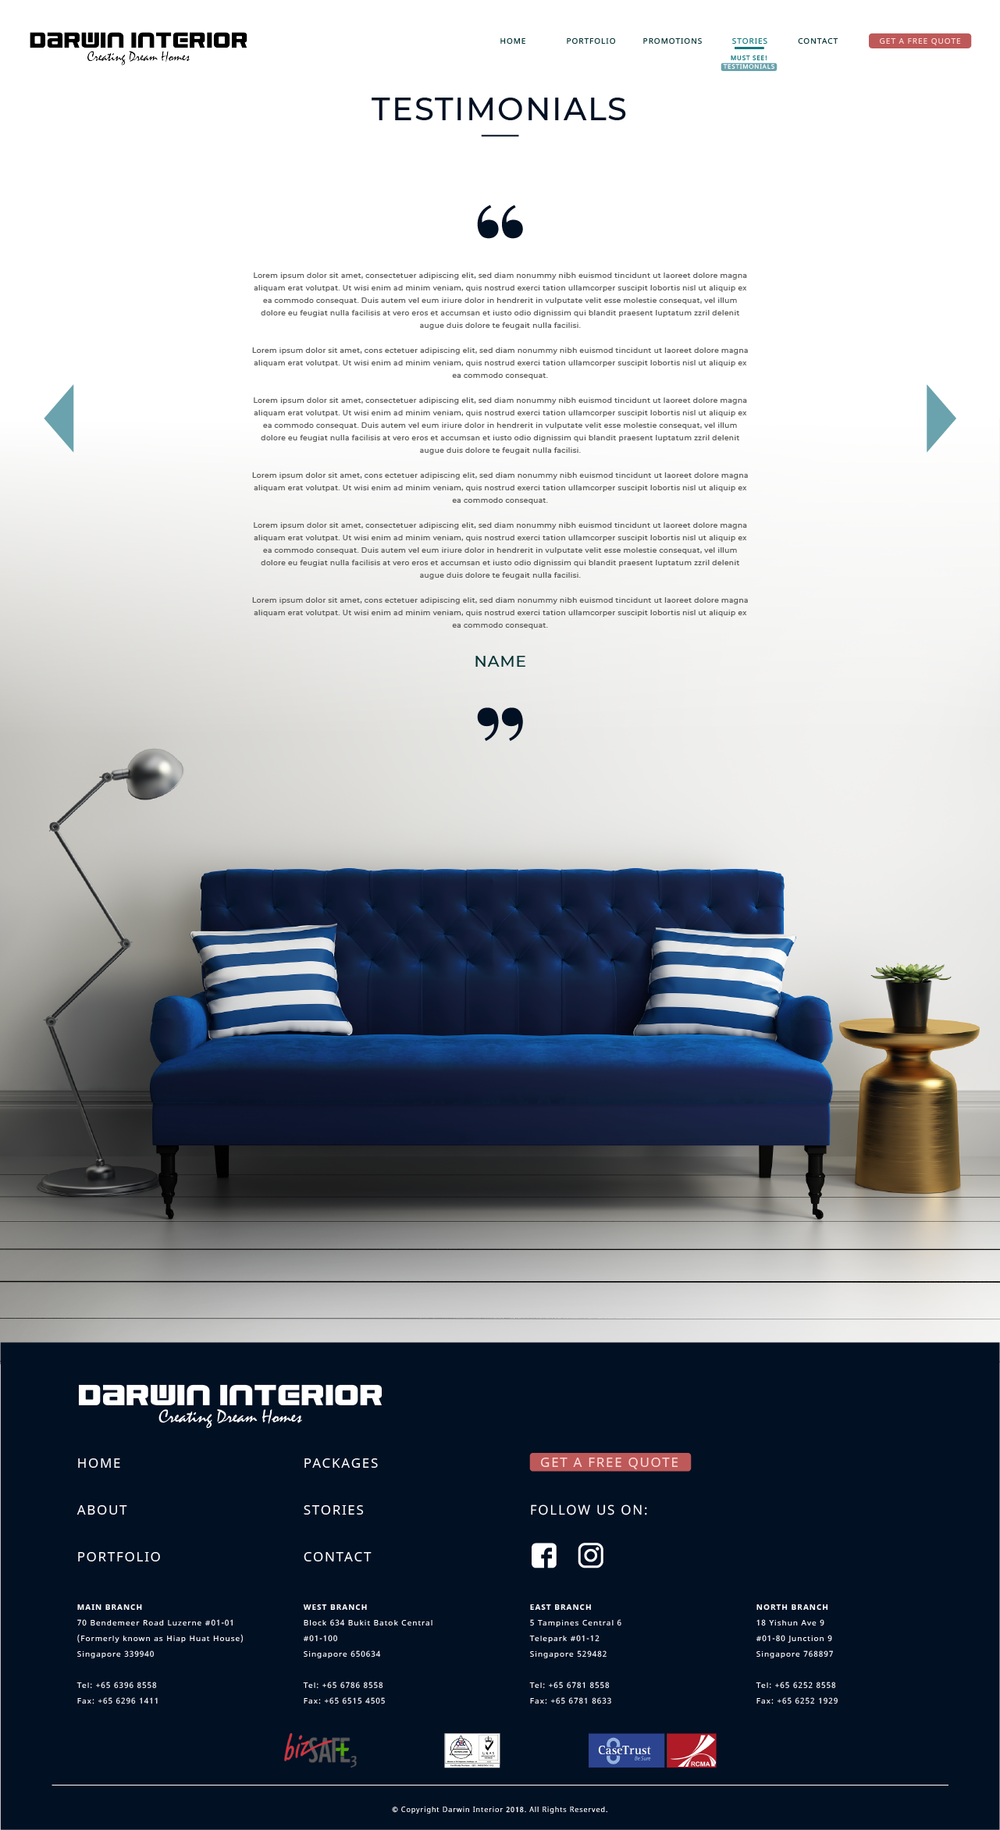 Darwin Interior_Web Design_Port-09.png